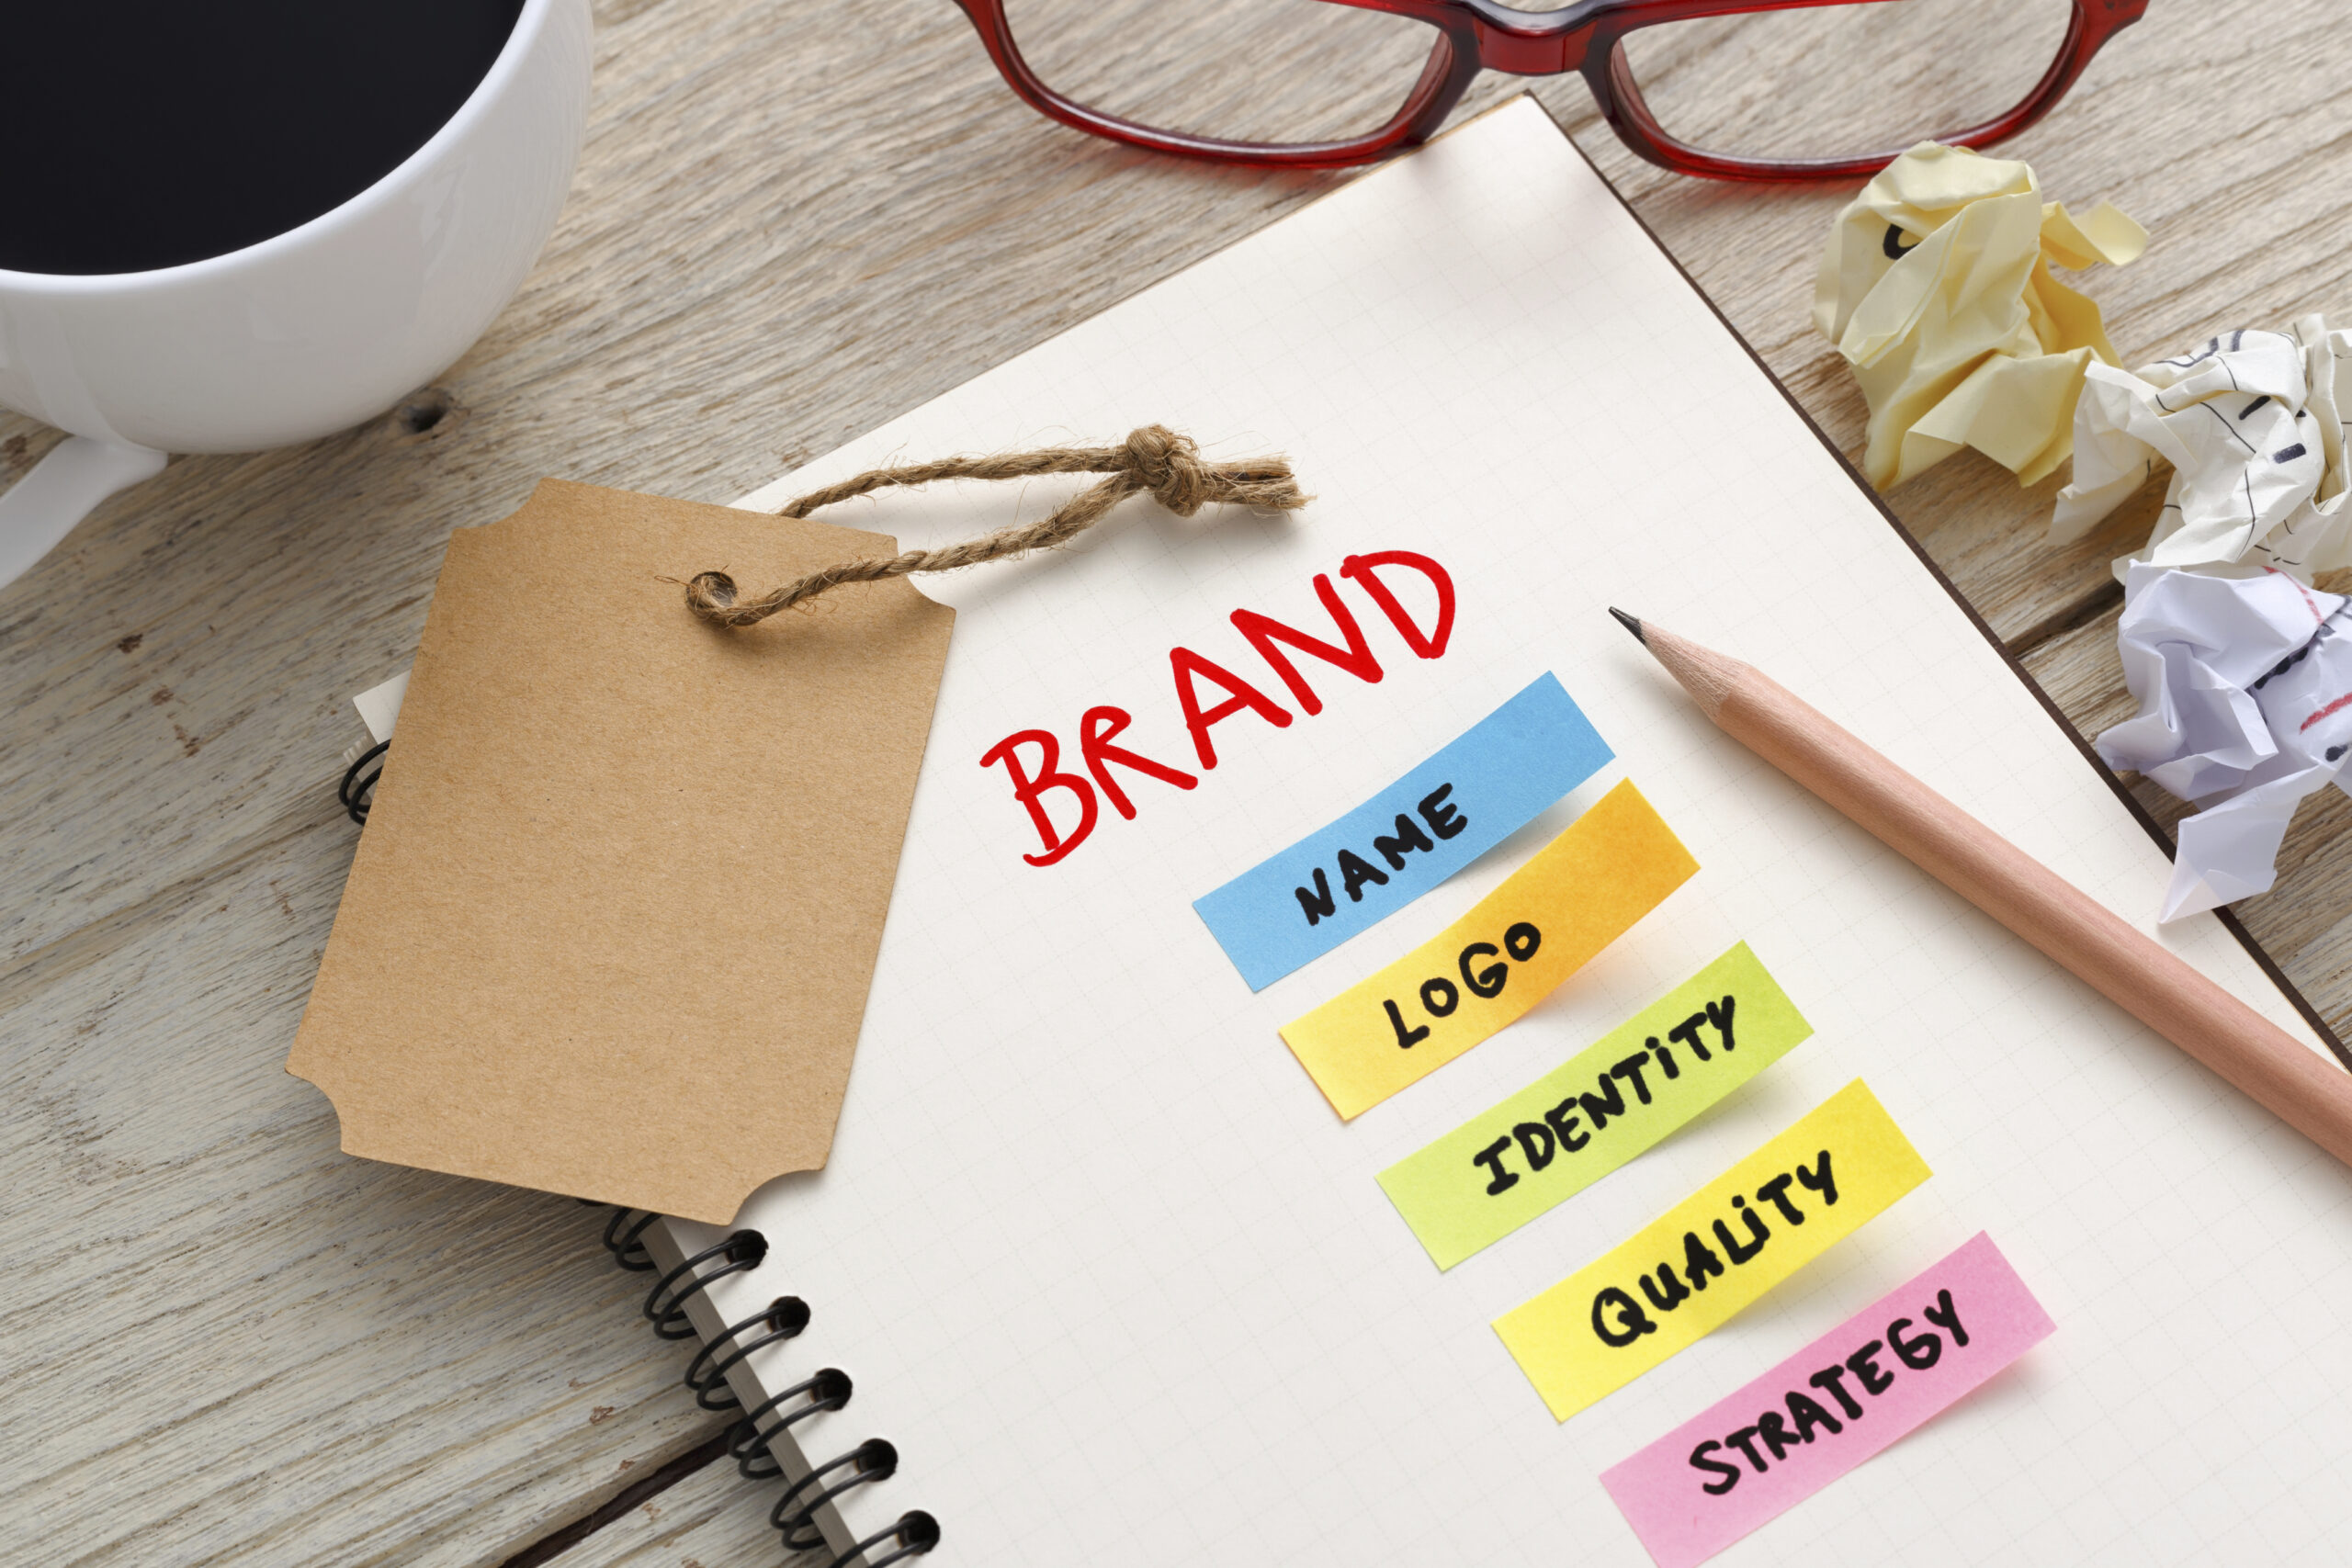 Brand marketing concept with brand tag